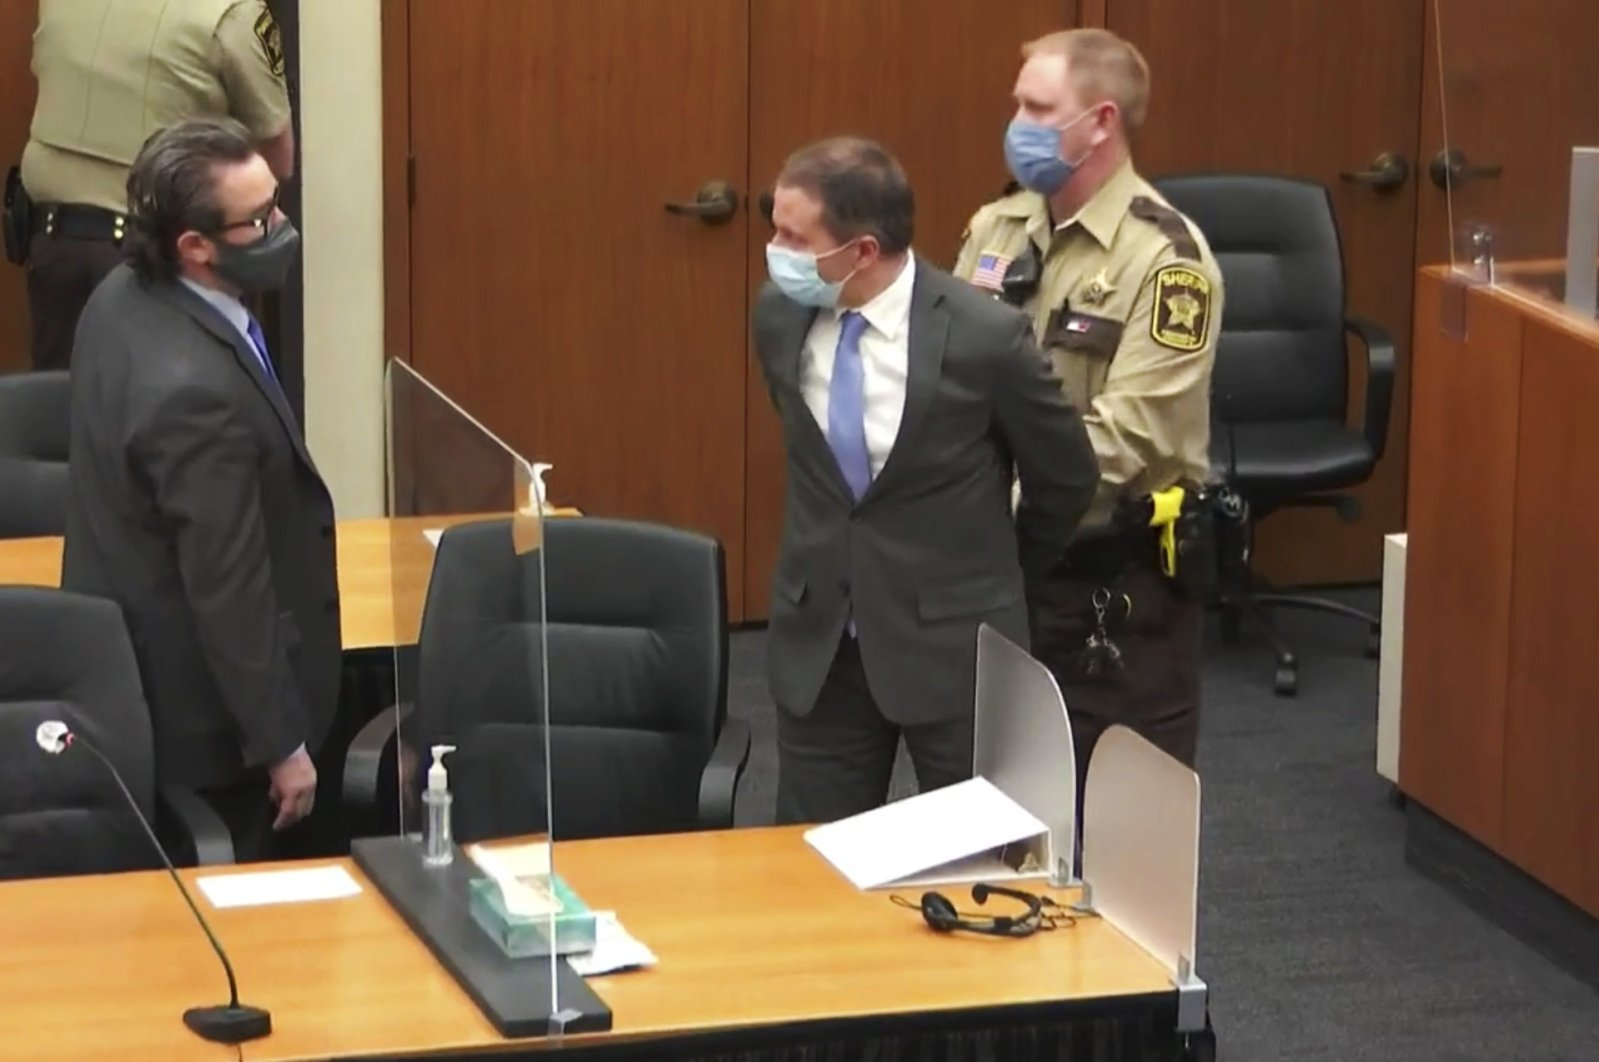 File image from video shows former Minneapolis police Officer Derek Chauvin (C) is taken into custody as his attorney, Eric Nelson (L) looks on, after the verdicts were read at Chauvin's trial for the 2020 death of George Floyd, at the Hennepin County Courthouse in Minneapolis, Minnesota, U.S., April 20, 2021. (AP Photo)